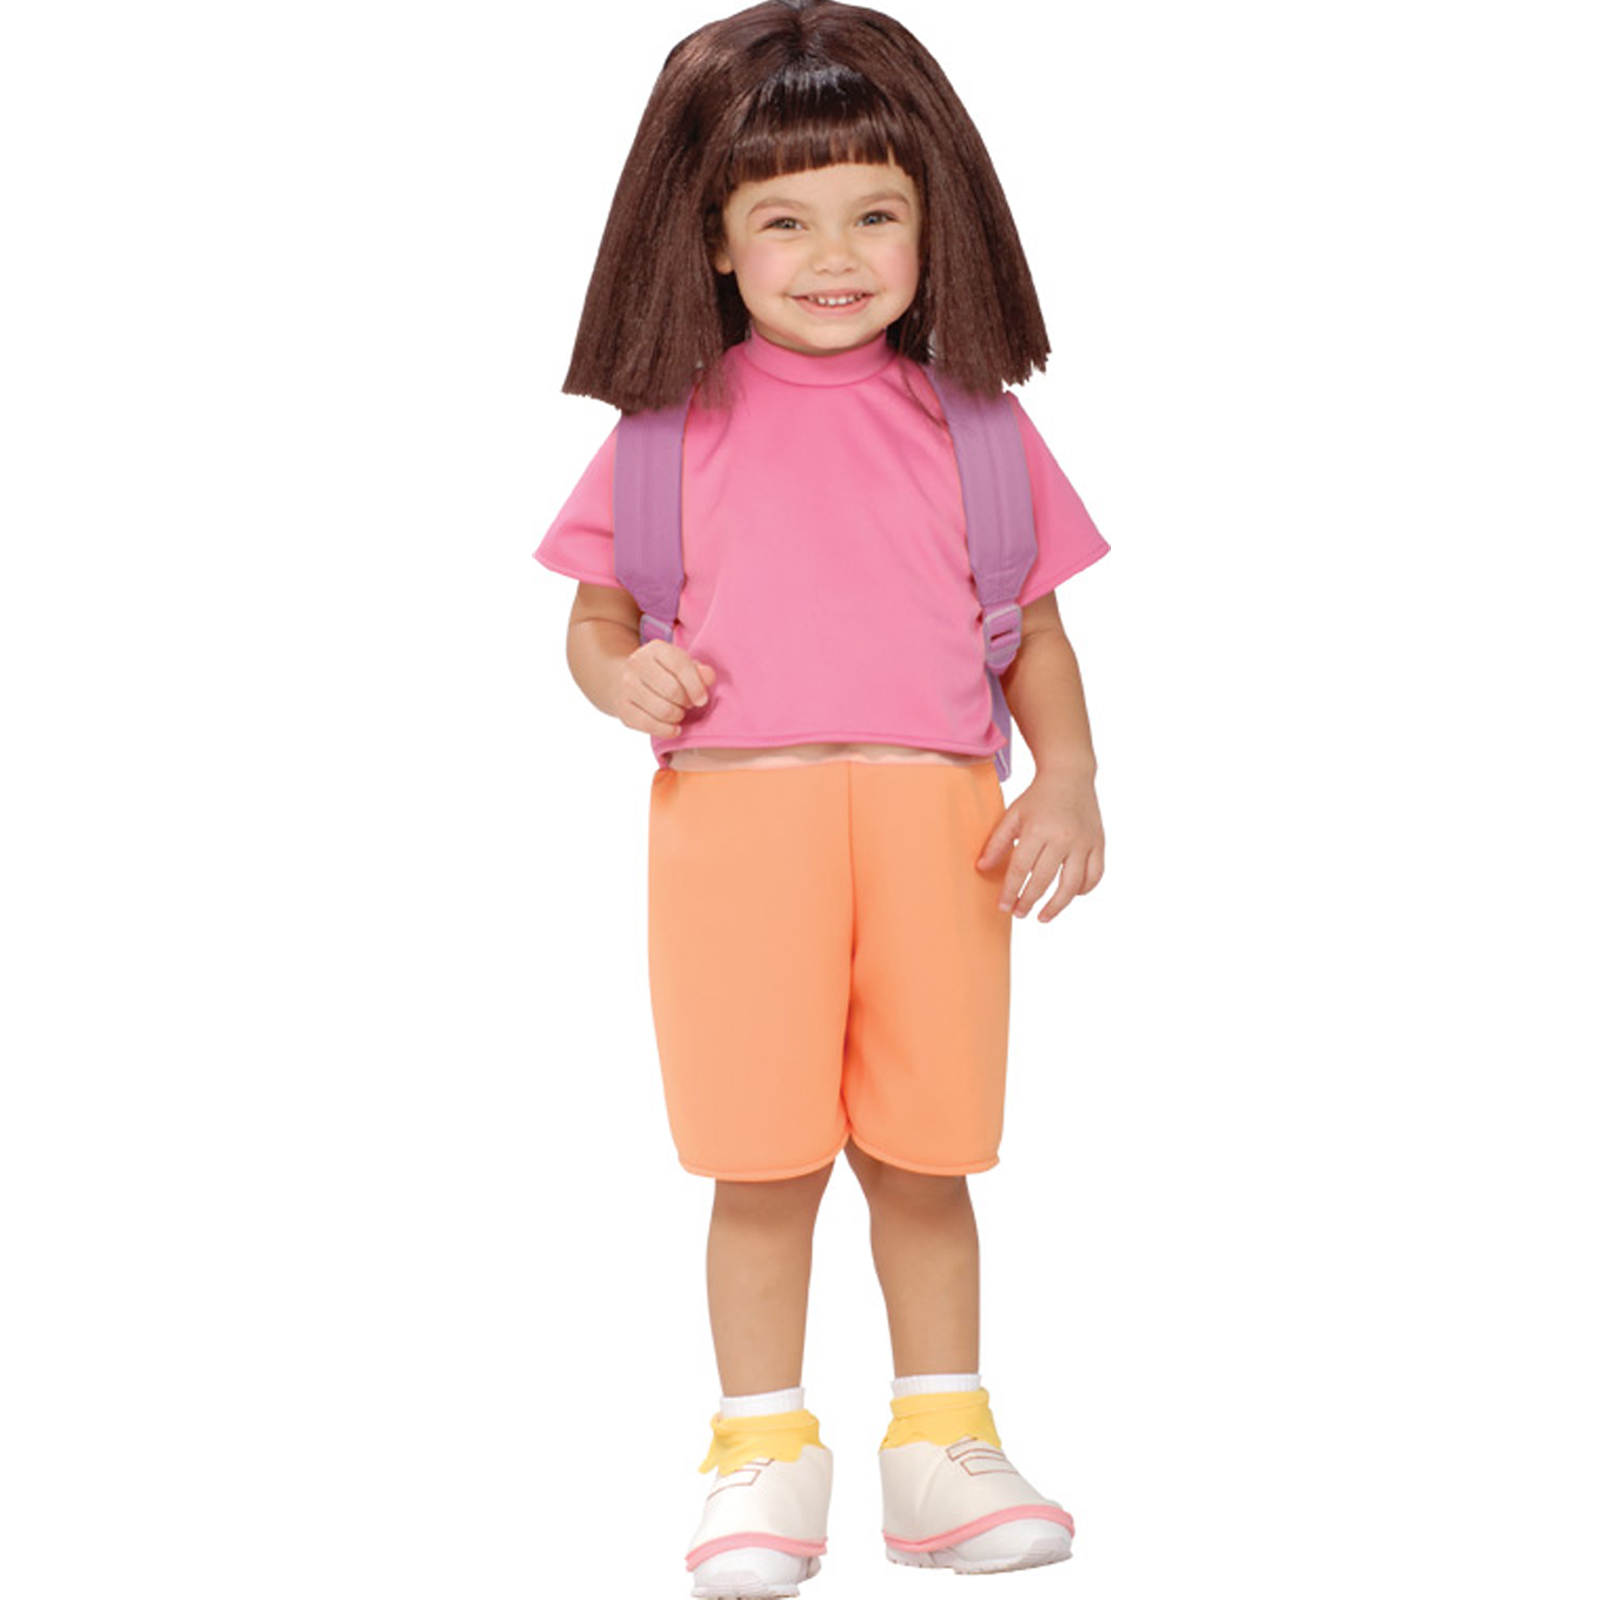 Dora The Explorer Halloween Costume For Adults Dora The Explorer Halloween